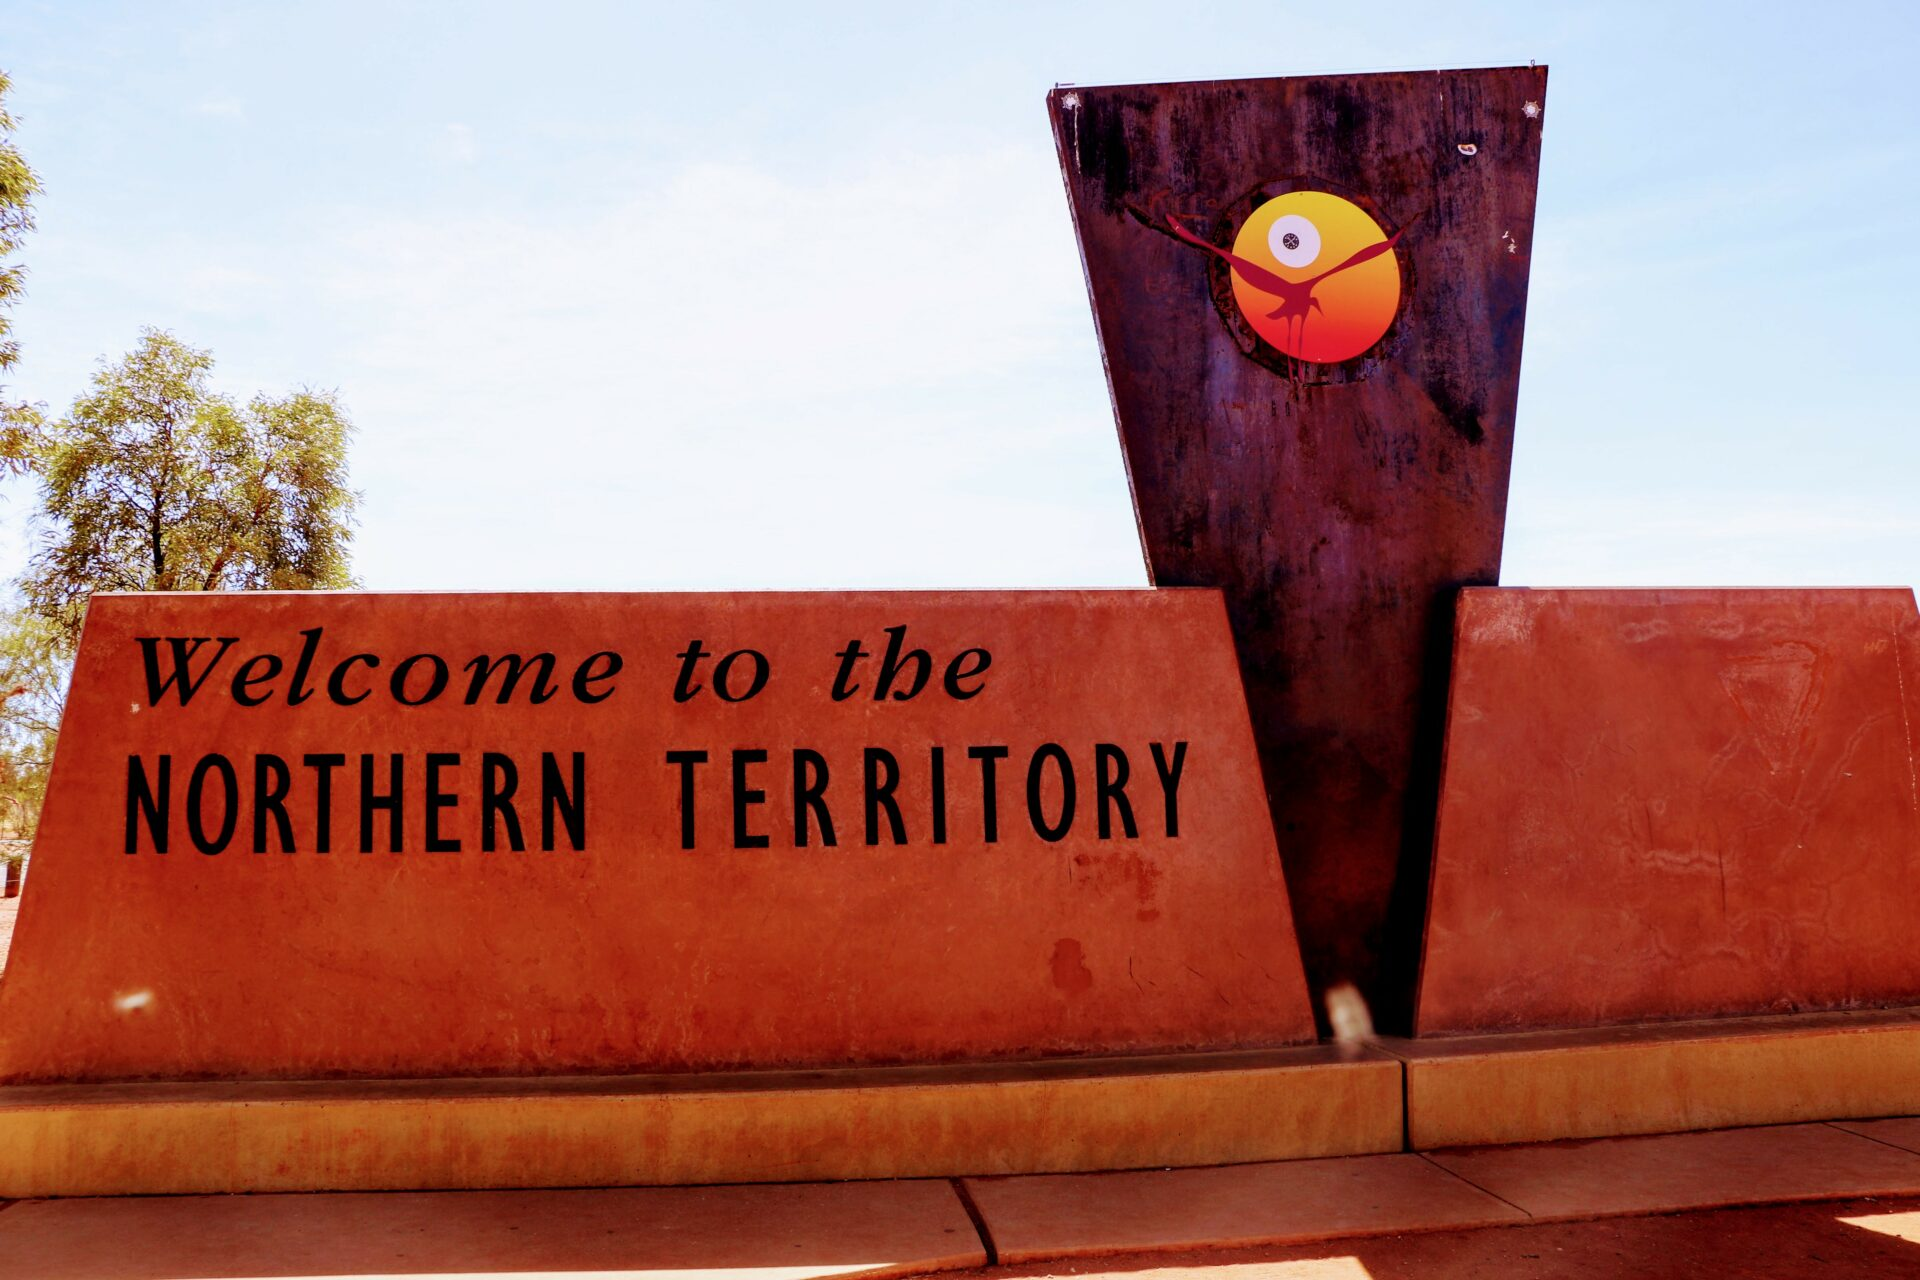 The Northern Territory Outback Australië sign